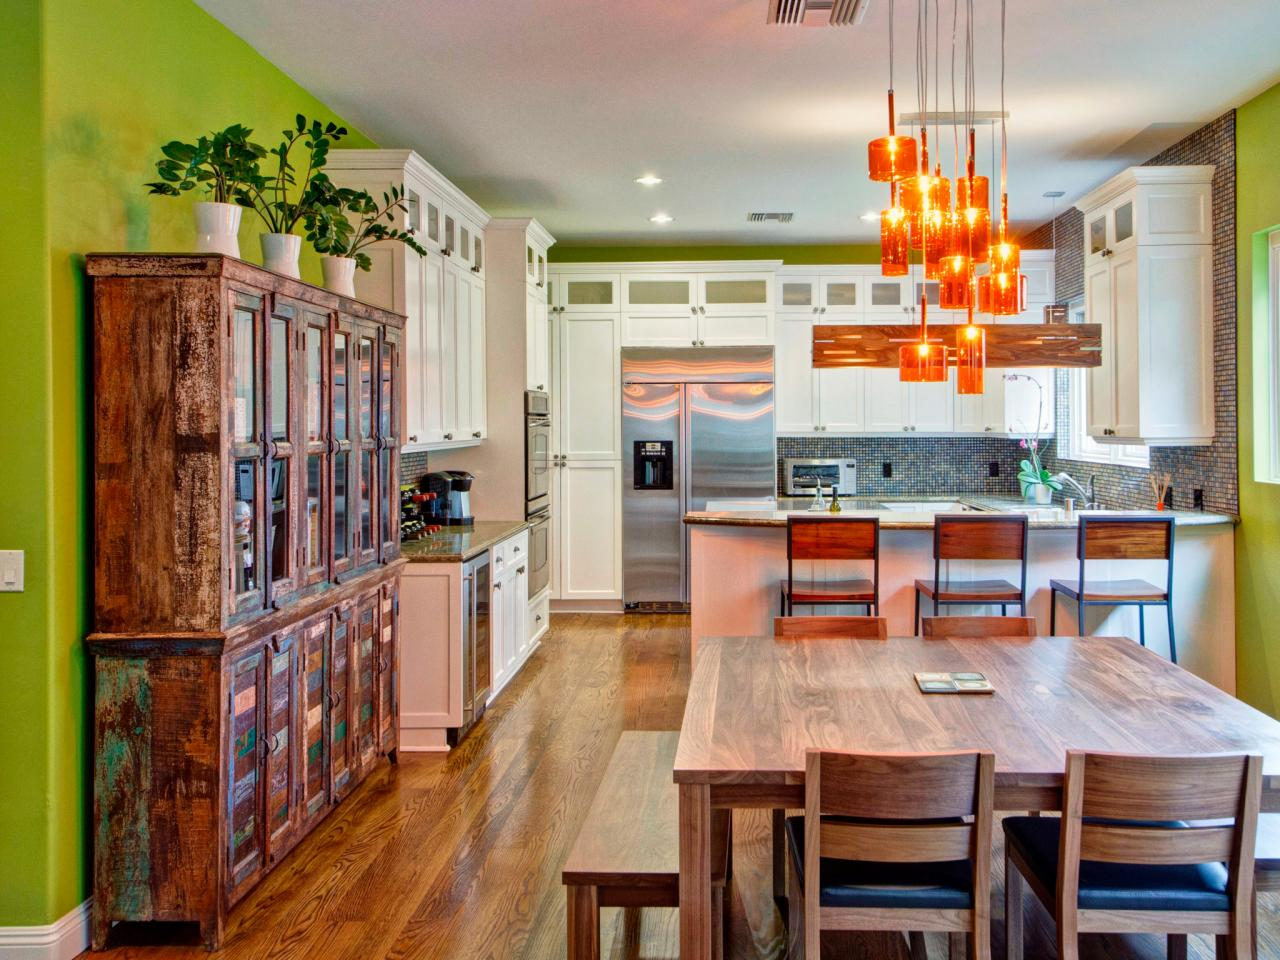 Green Eclectic Kitchen With Orange Pendant Lamps